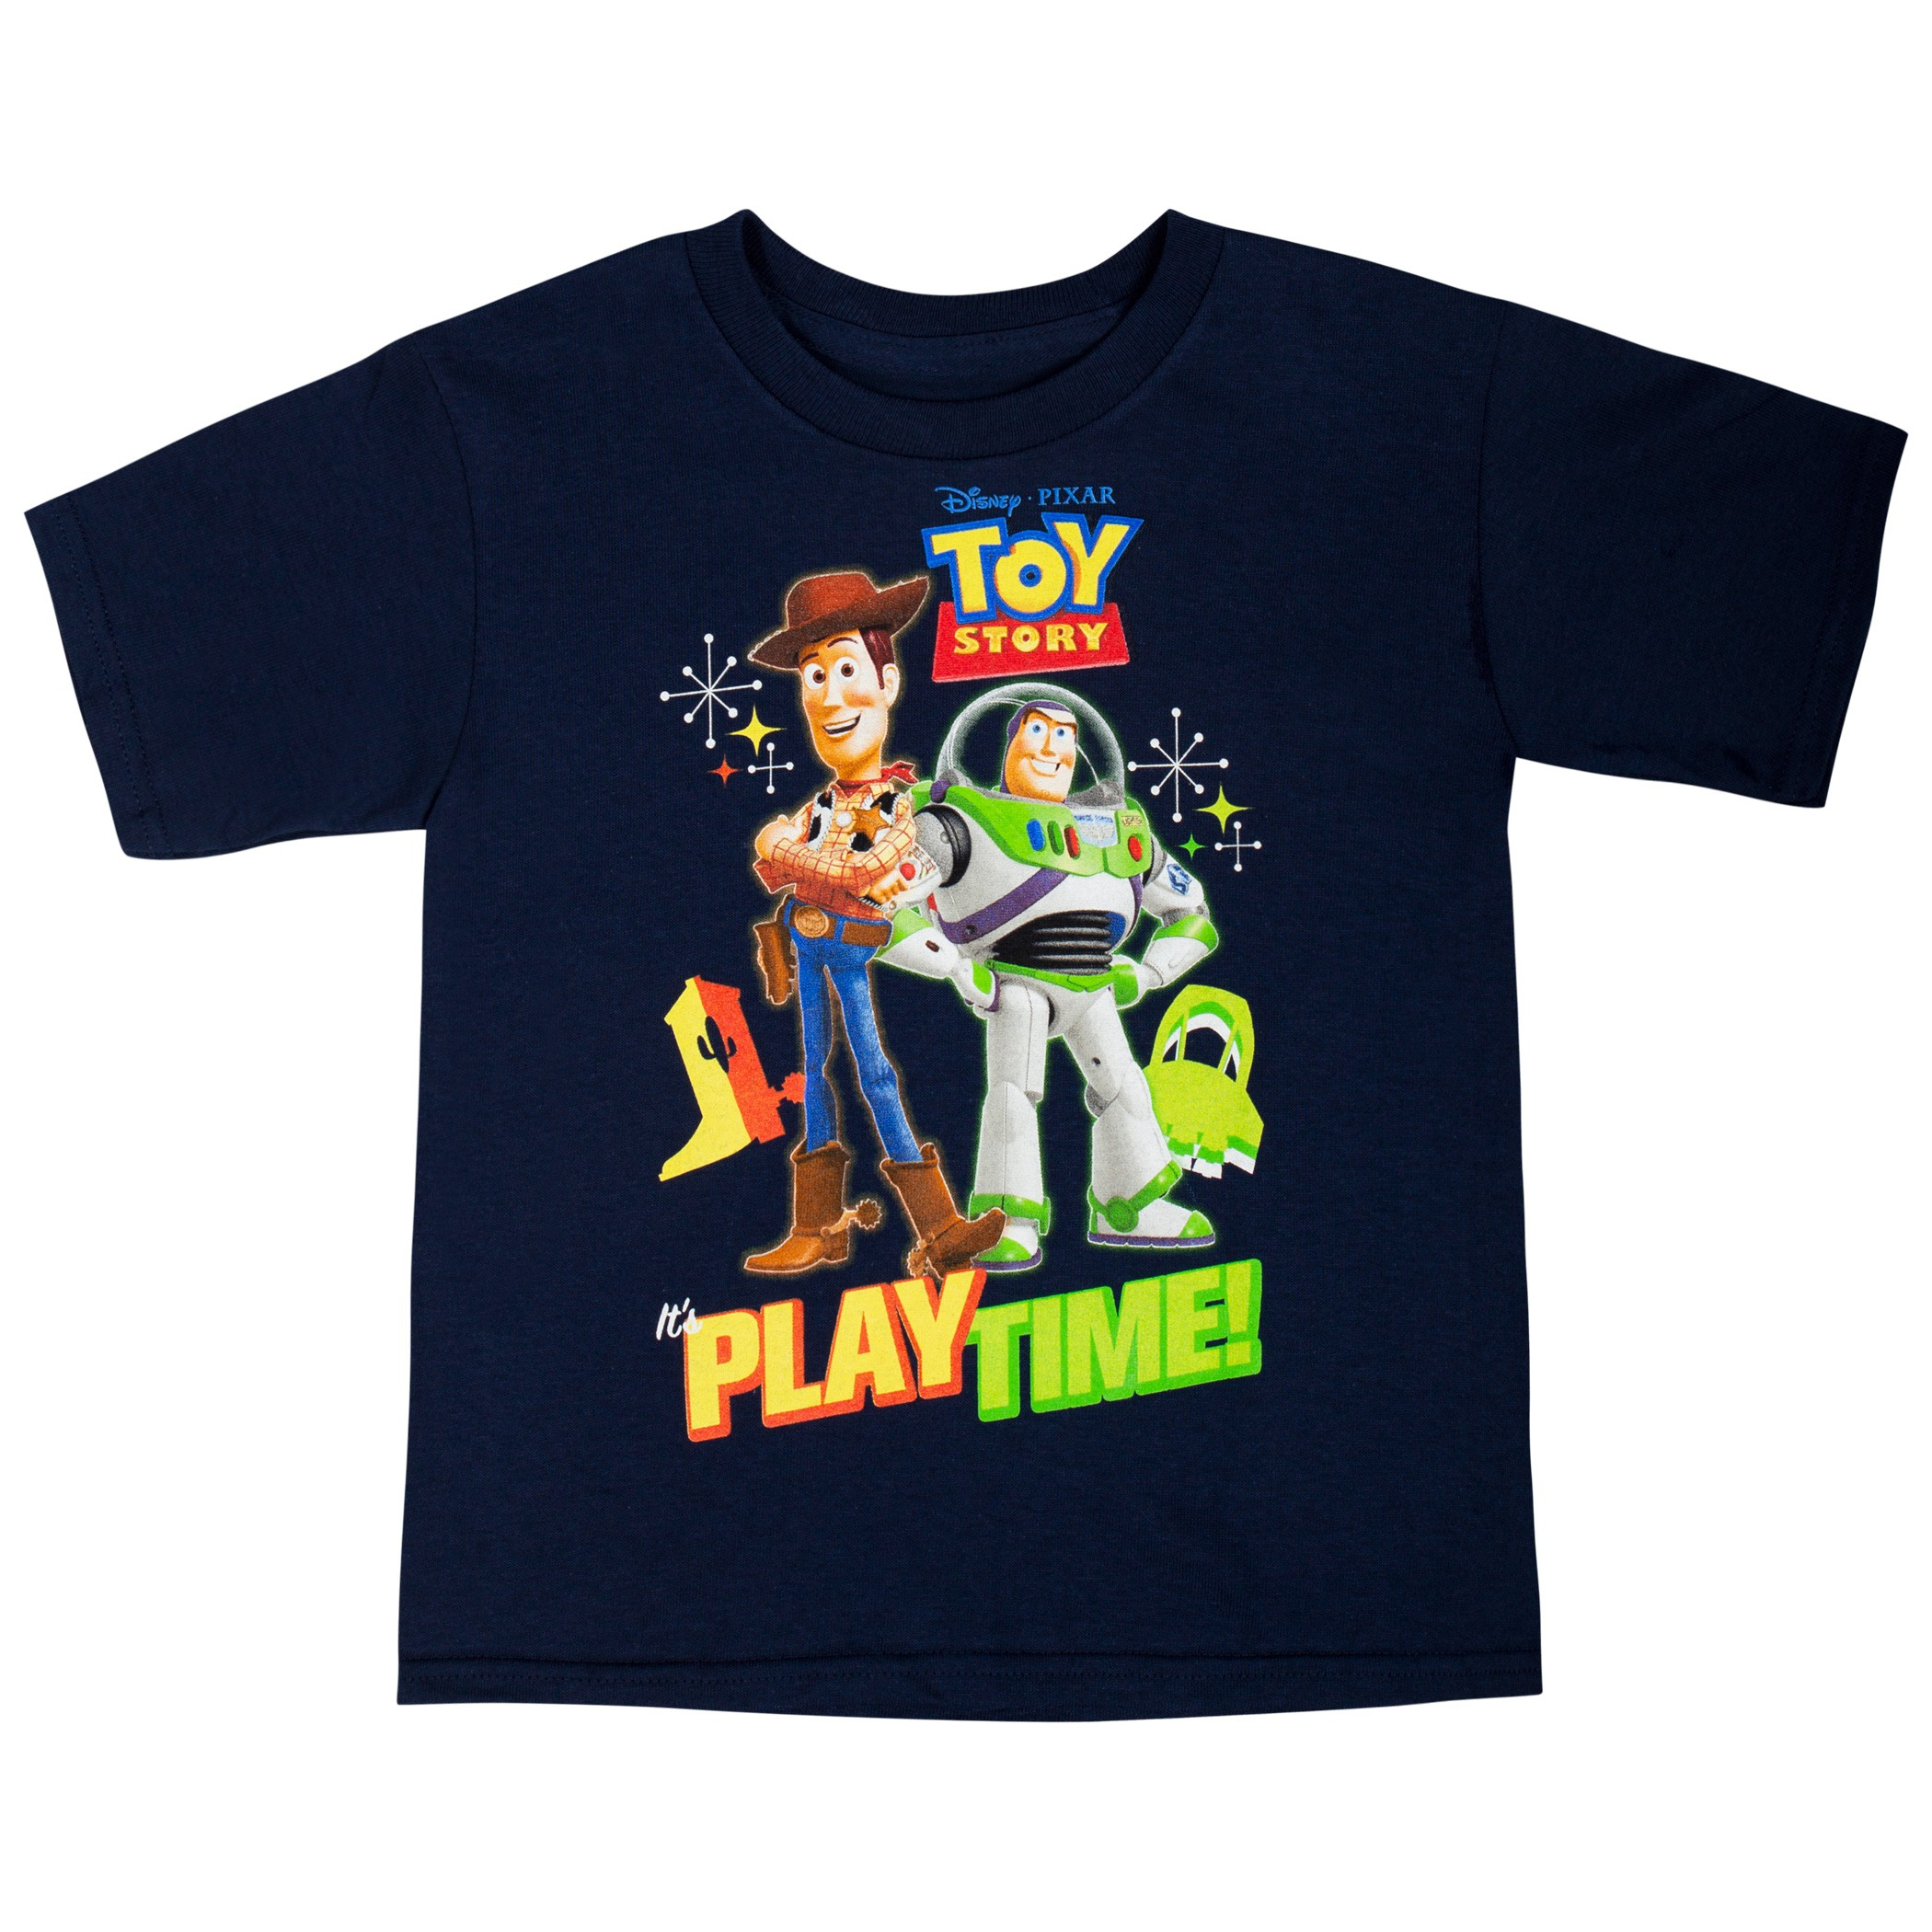 Toy Story Toddlers Play Time Navy Blue Tee Shirt